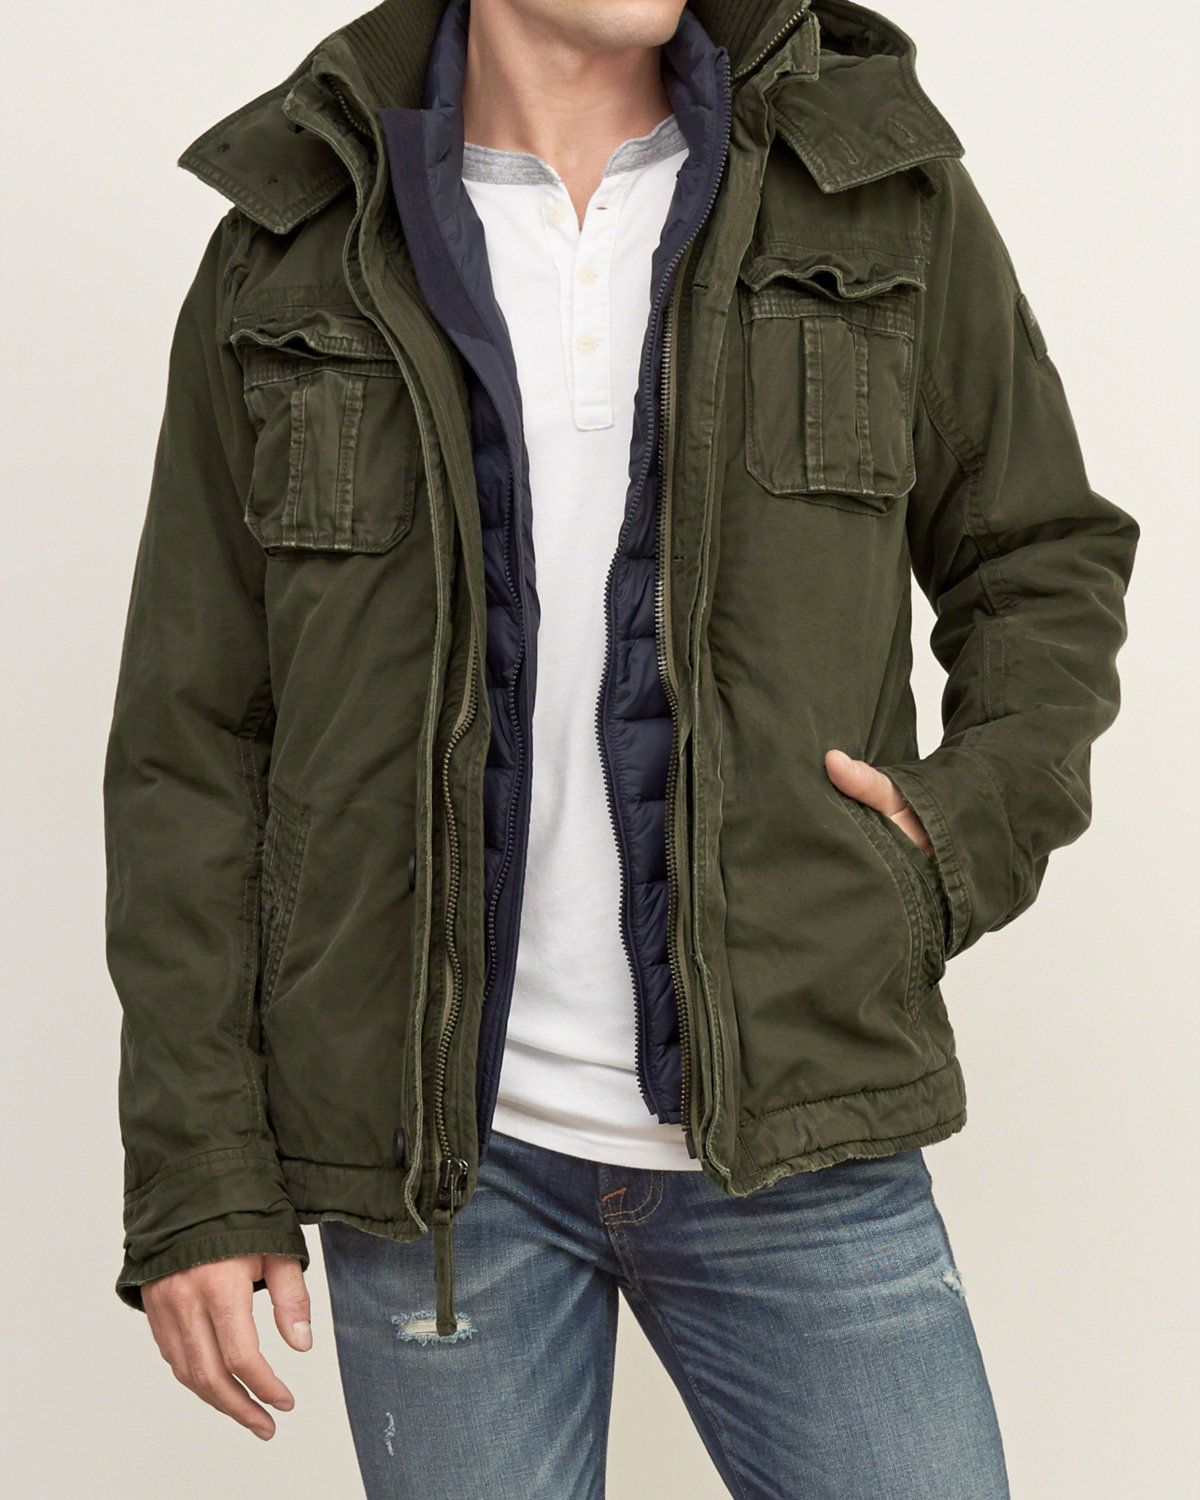 Mens A&F Premium Mountain Jacket | Mens Outerwear & Jackets ...